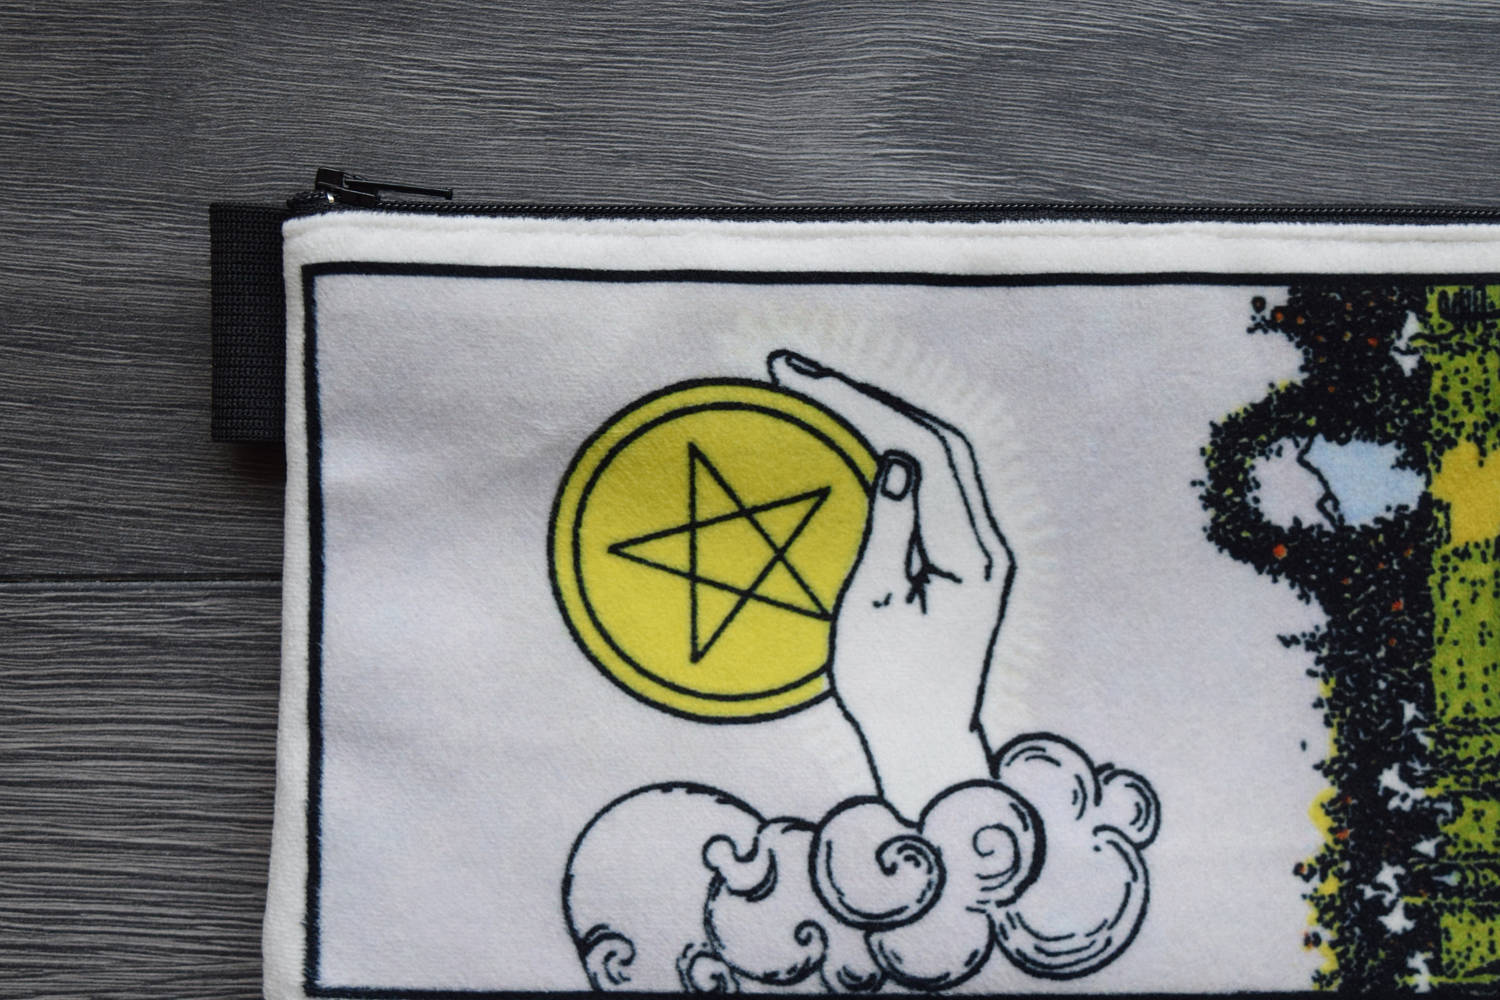 ace of pentacles - lined velveteen pencil case - minor arcana tarot card series